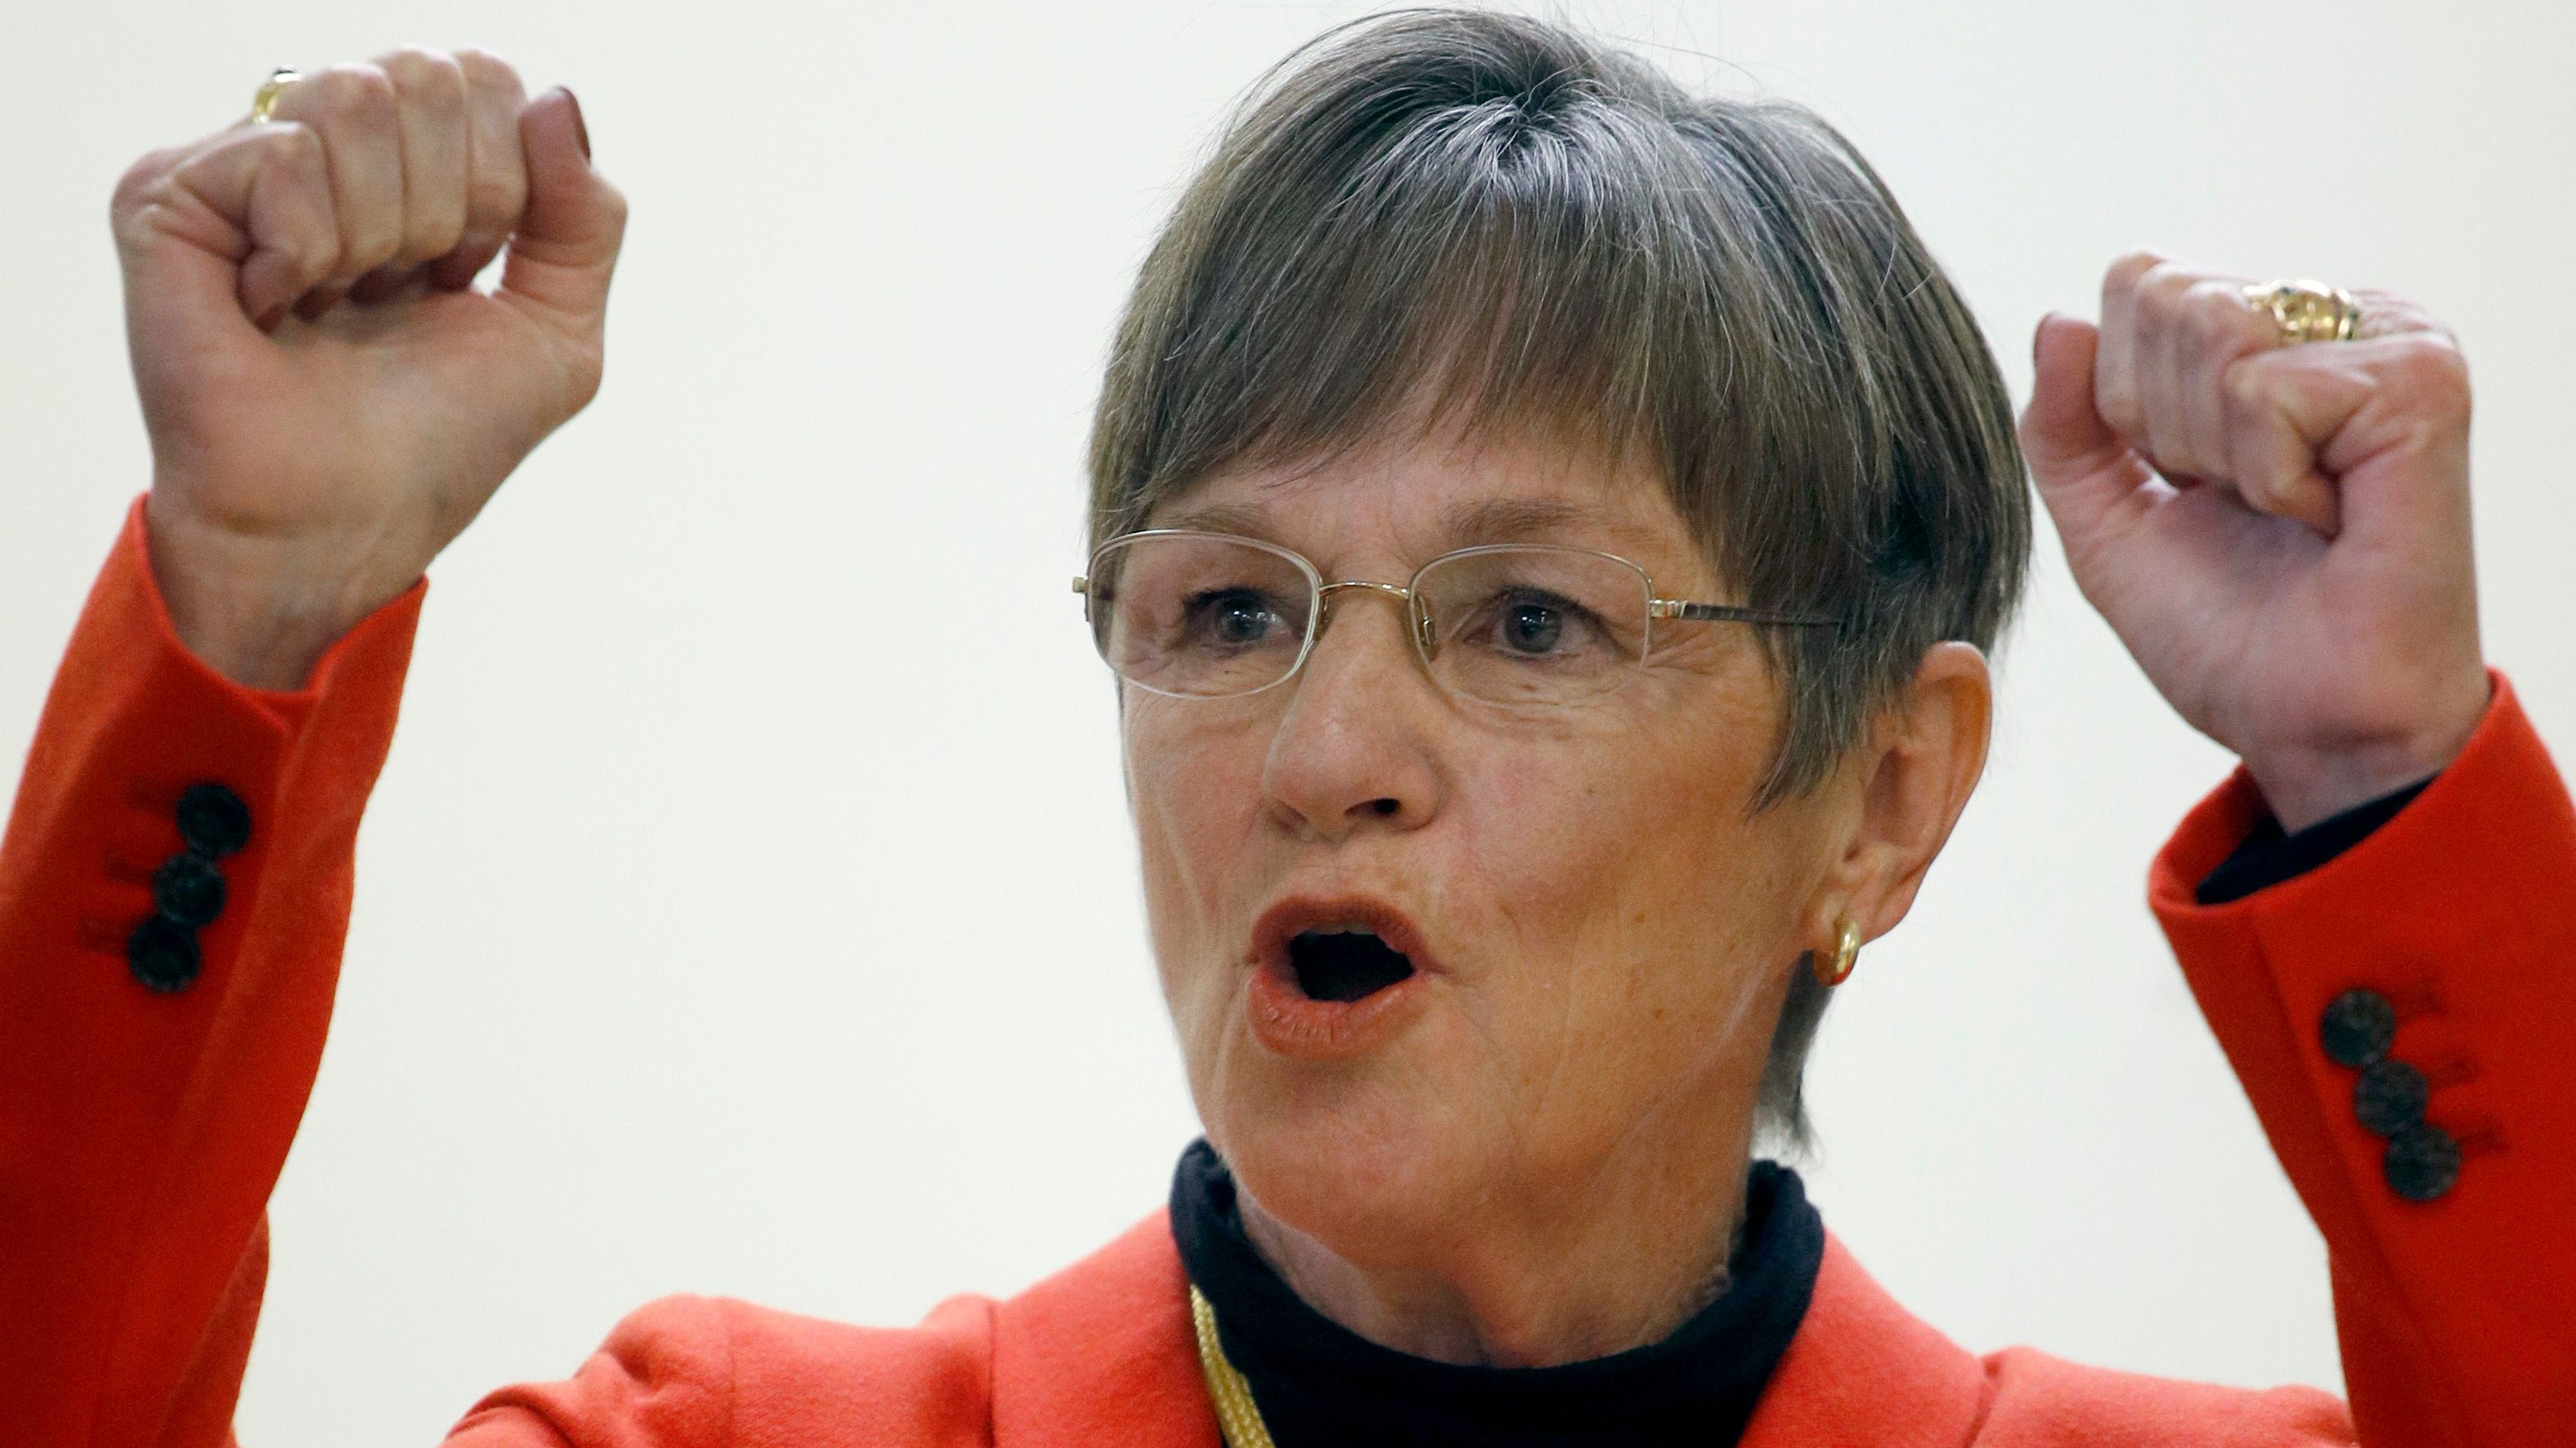 Democratic candidate for Kansas Governor, Laura Kelly